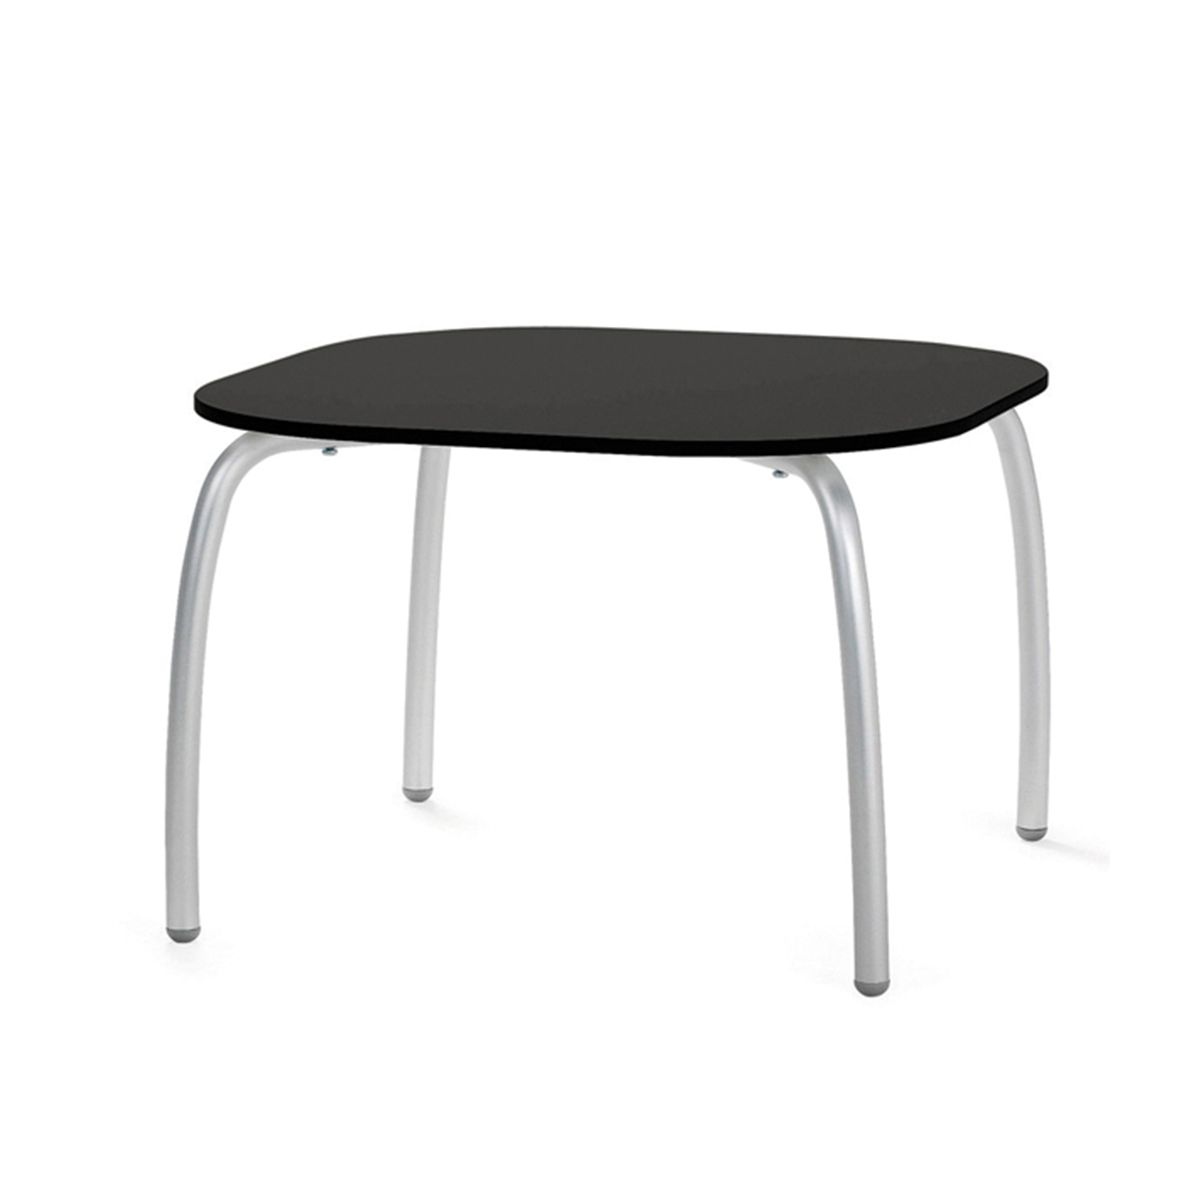 table basse nardi loto relax 60 cm tables basses design nardi. Black Bedroom Furniture Sets. Home Design Ideas